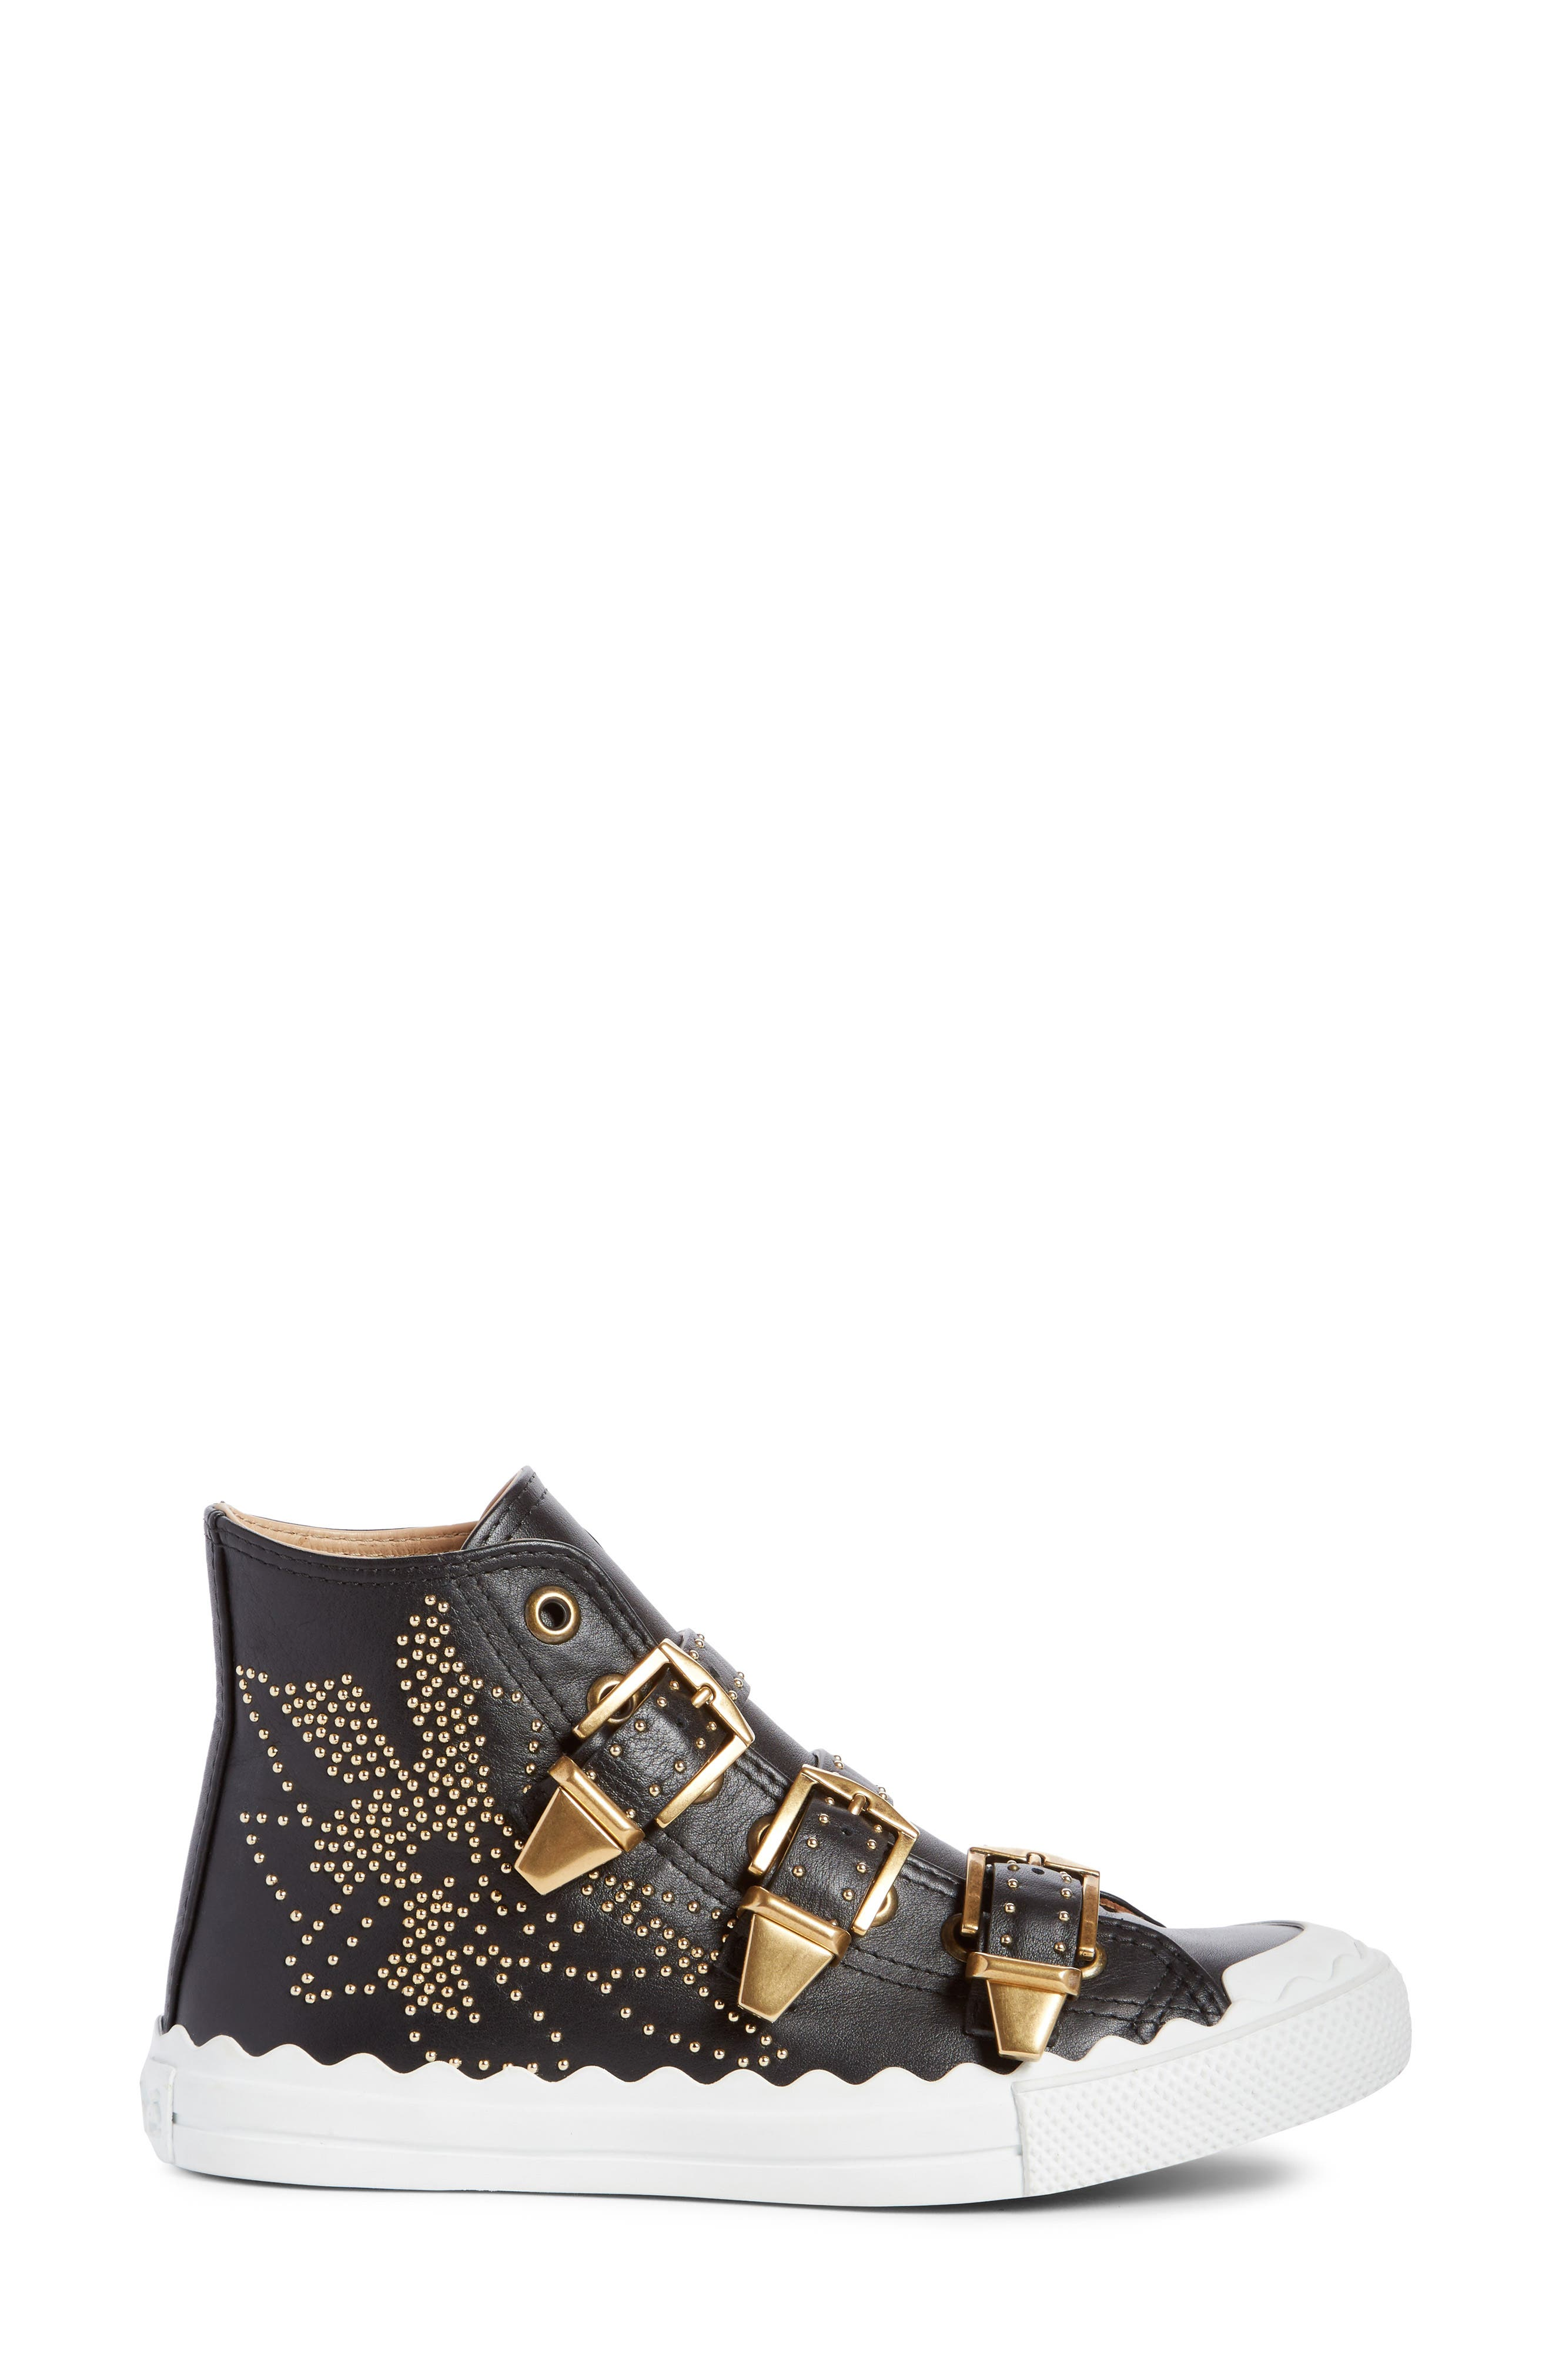 Kyle Stud Buckle High Top Sneaker,                             Alternate thumbnail 4, color,                             Black/ Gold